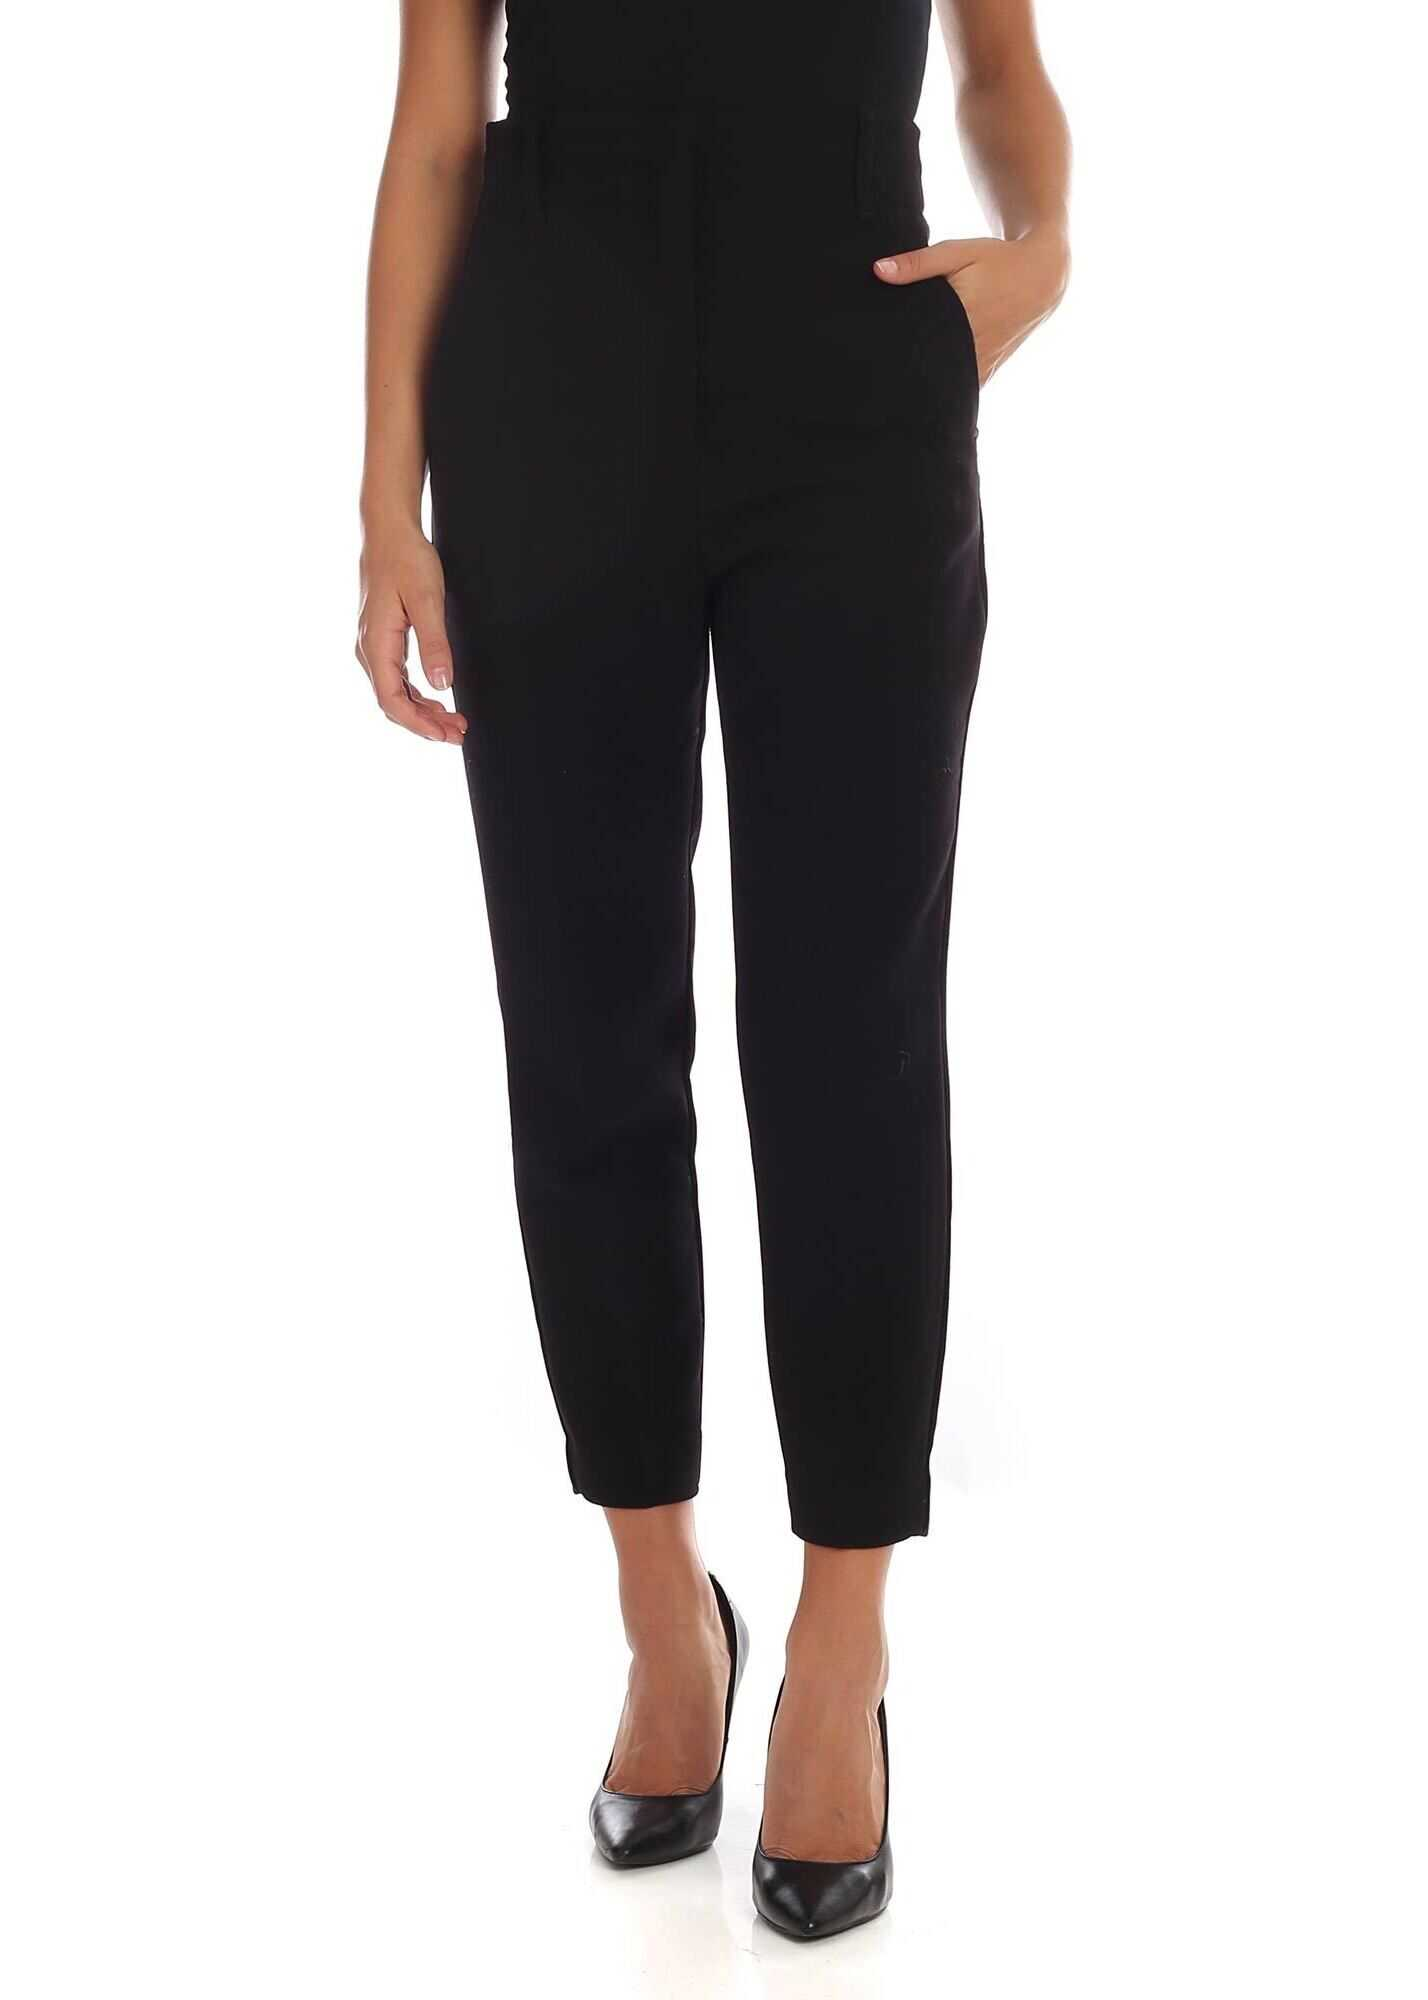 Tenerezza Trousers In Black thumbnail